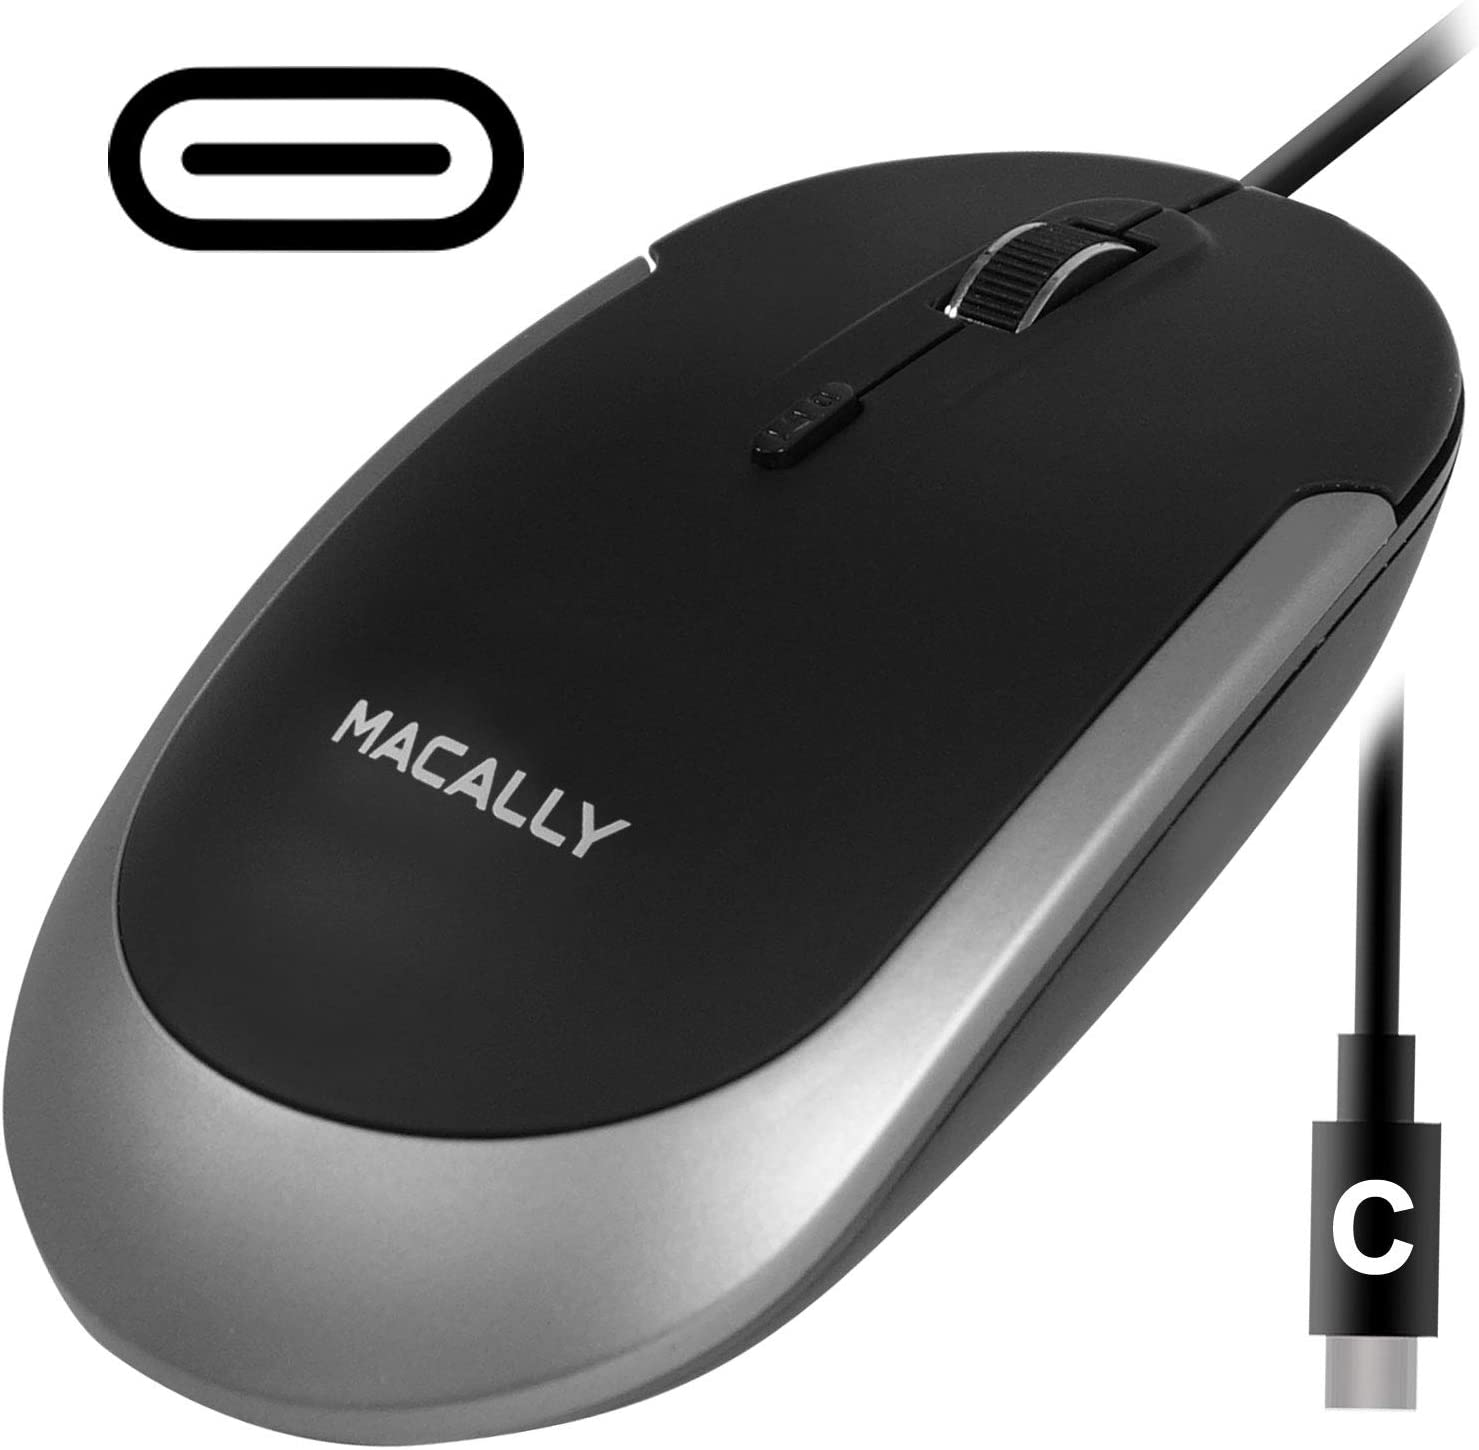 Macally USB Type C Mouse - Slim & Compact Design - USB C Mouse for MacBook Pro iMac PC etc. - Simple 3 Button & Scroll Wheel Layout with DPI Switch - Comfortable Plug & Play Corded Mouse - (Black)